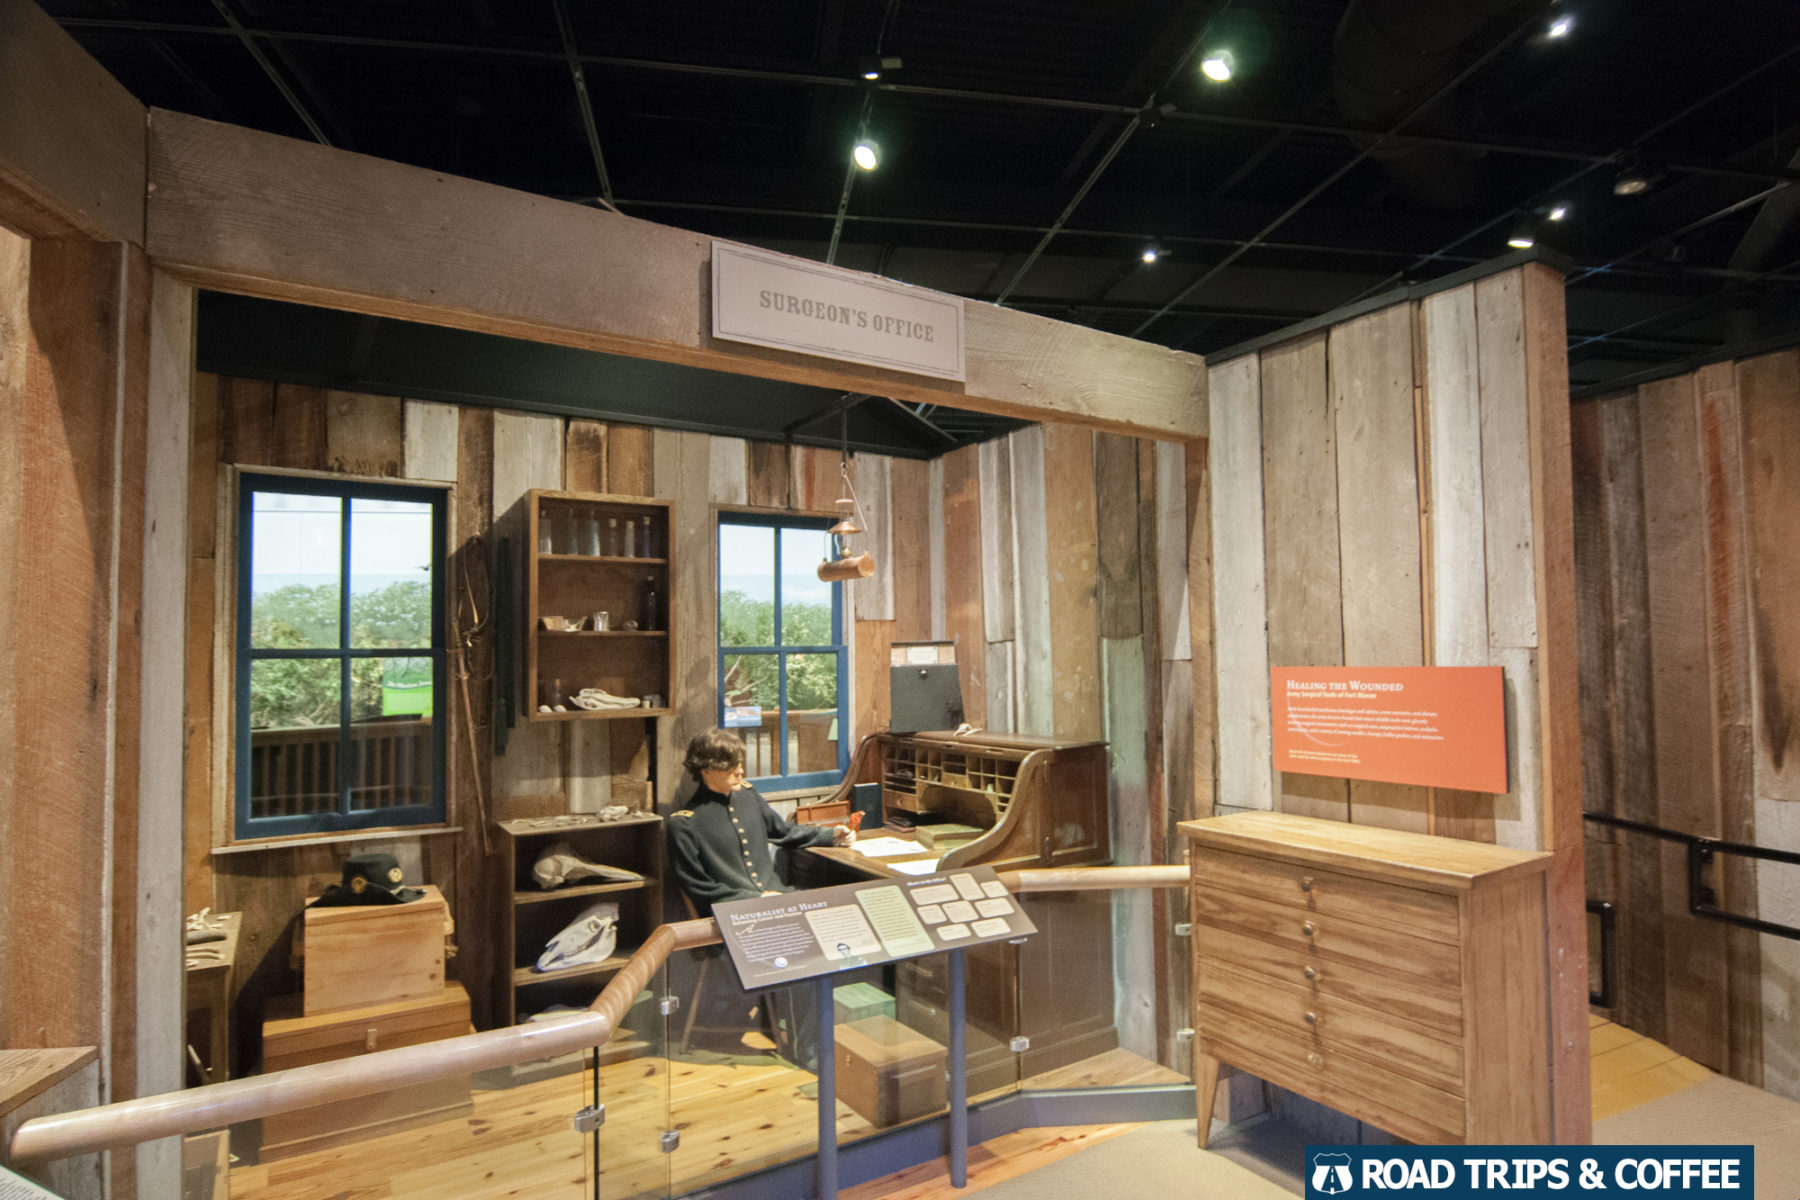 A museum exhibit depicting what life was like at the Surgeon's Office inside Fort Macon State Park in Atlantic Beach, North Carolina